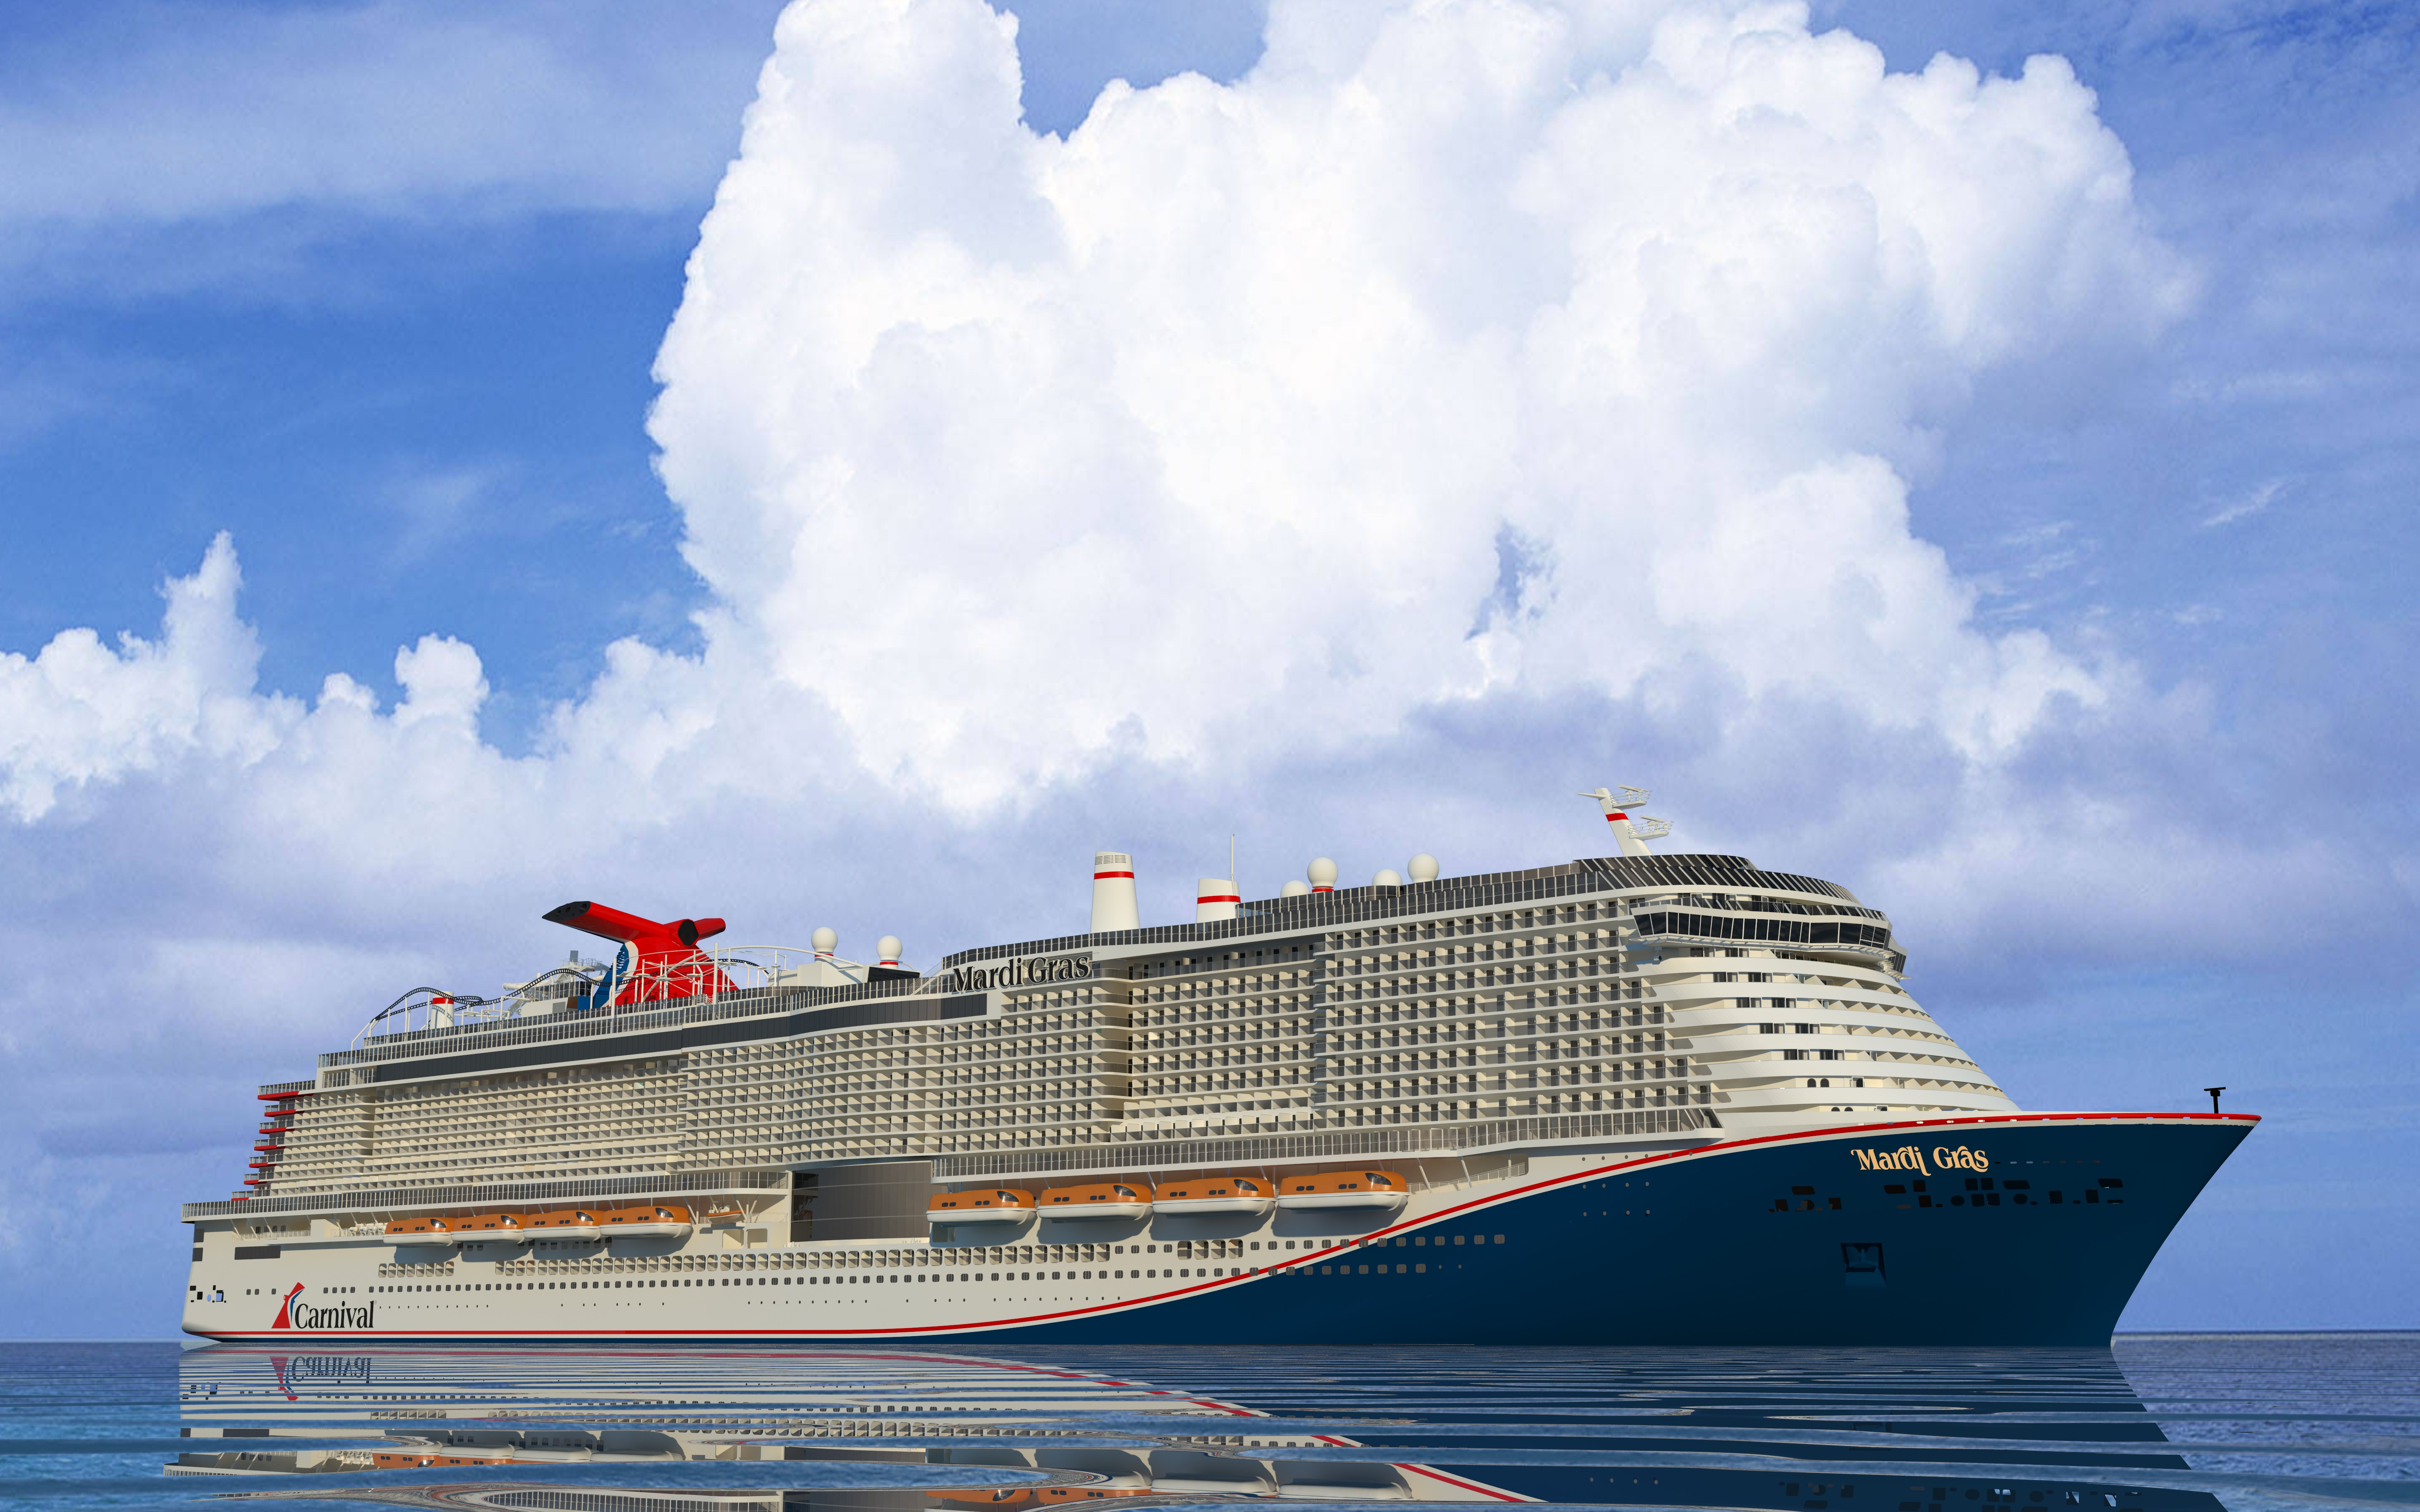 Carnival Mardi Gras cruise ship launch delayed two and a half months to November 2020